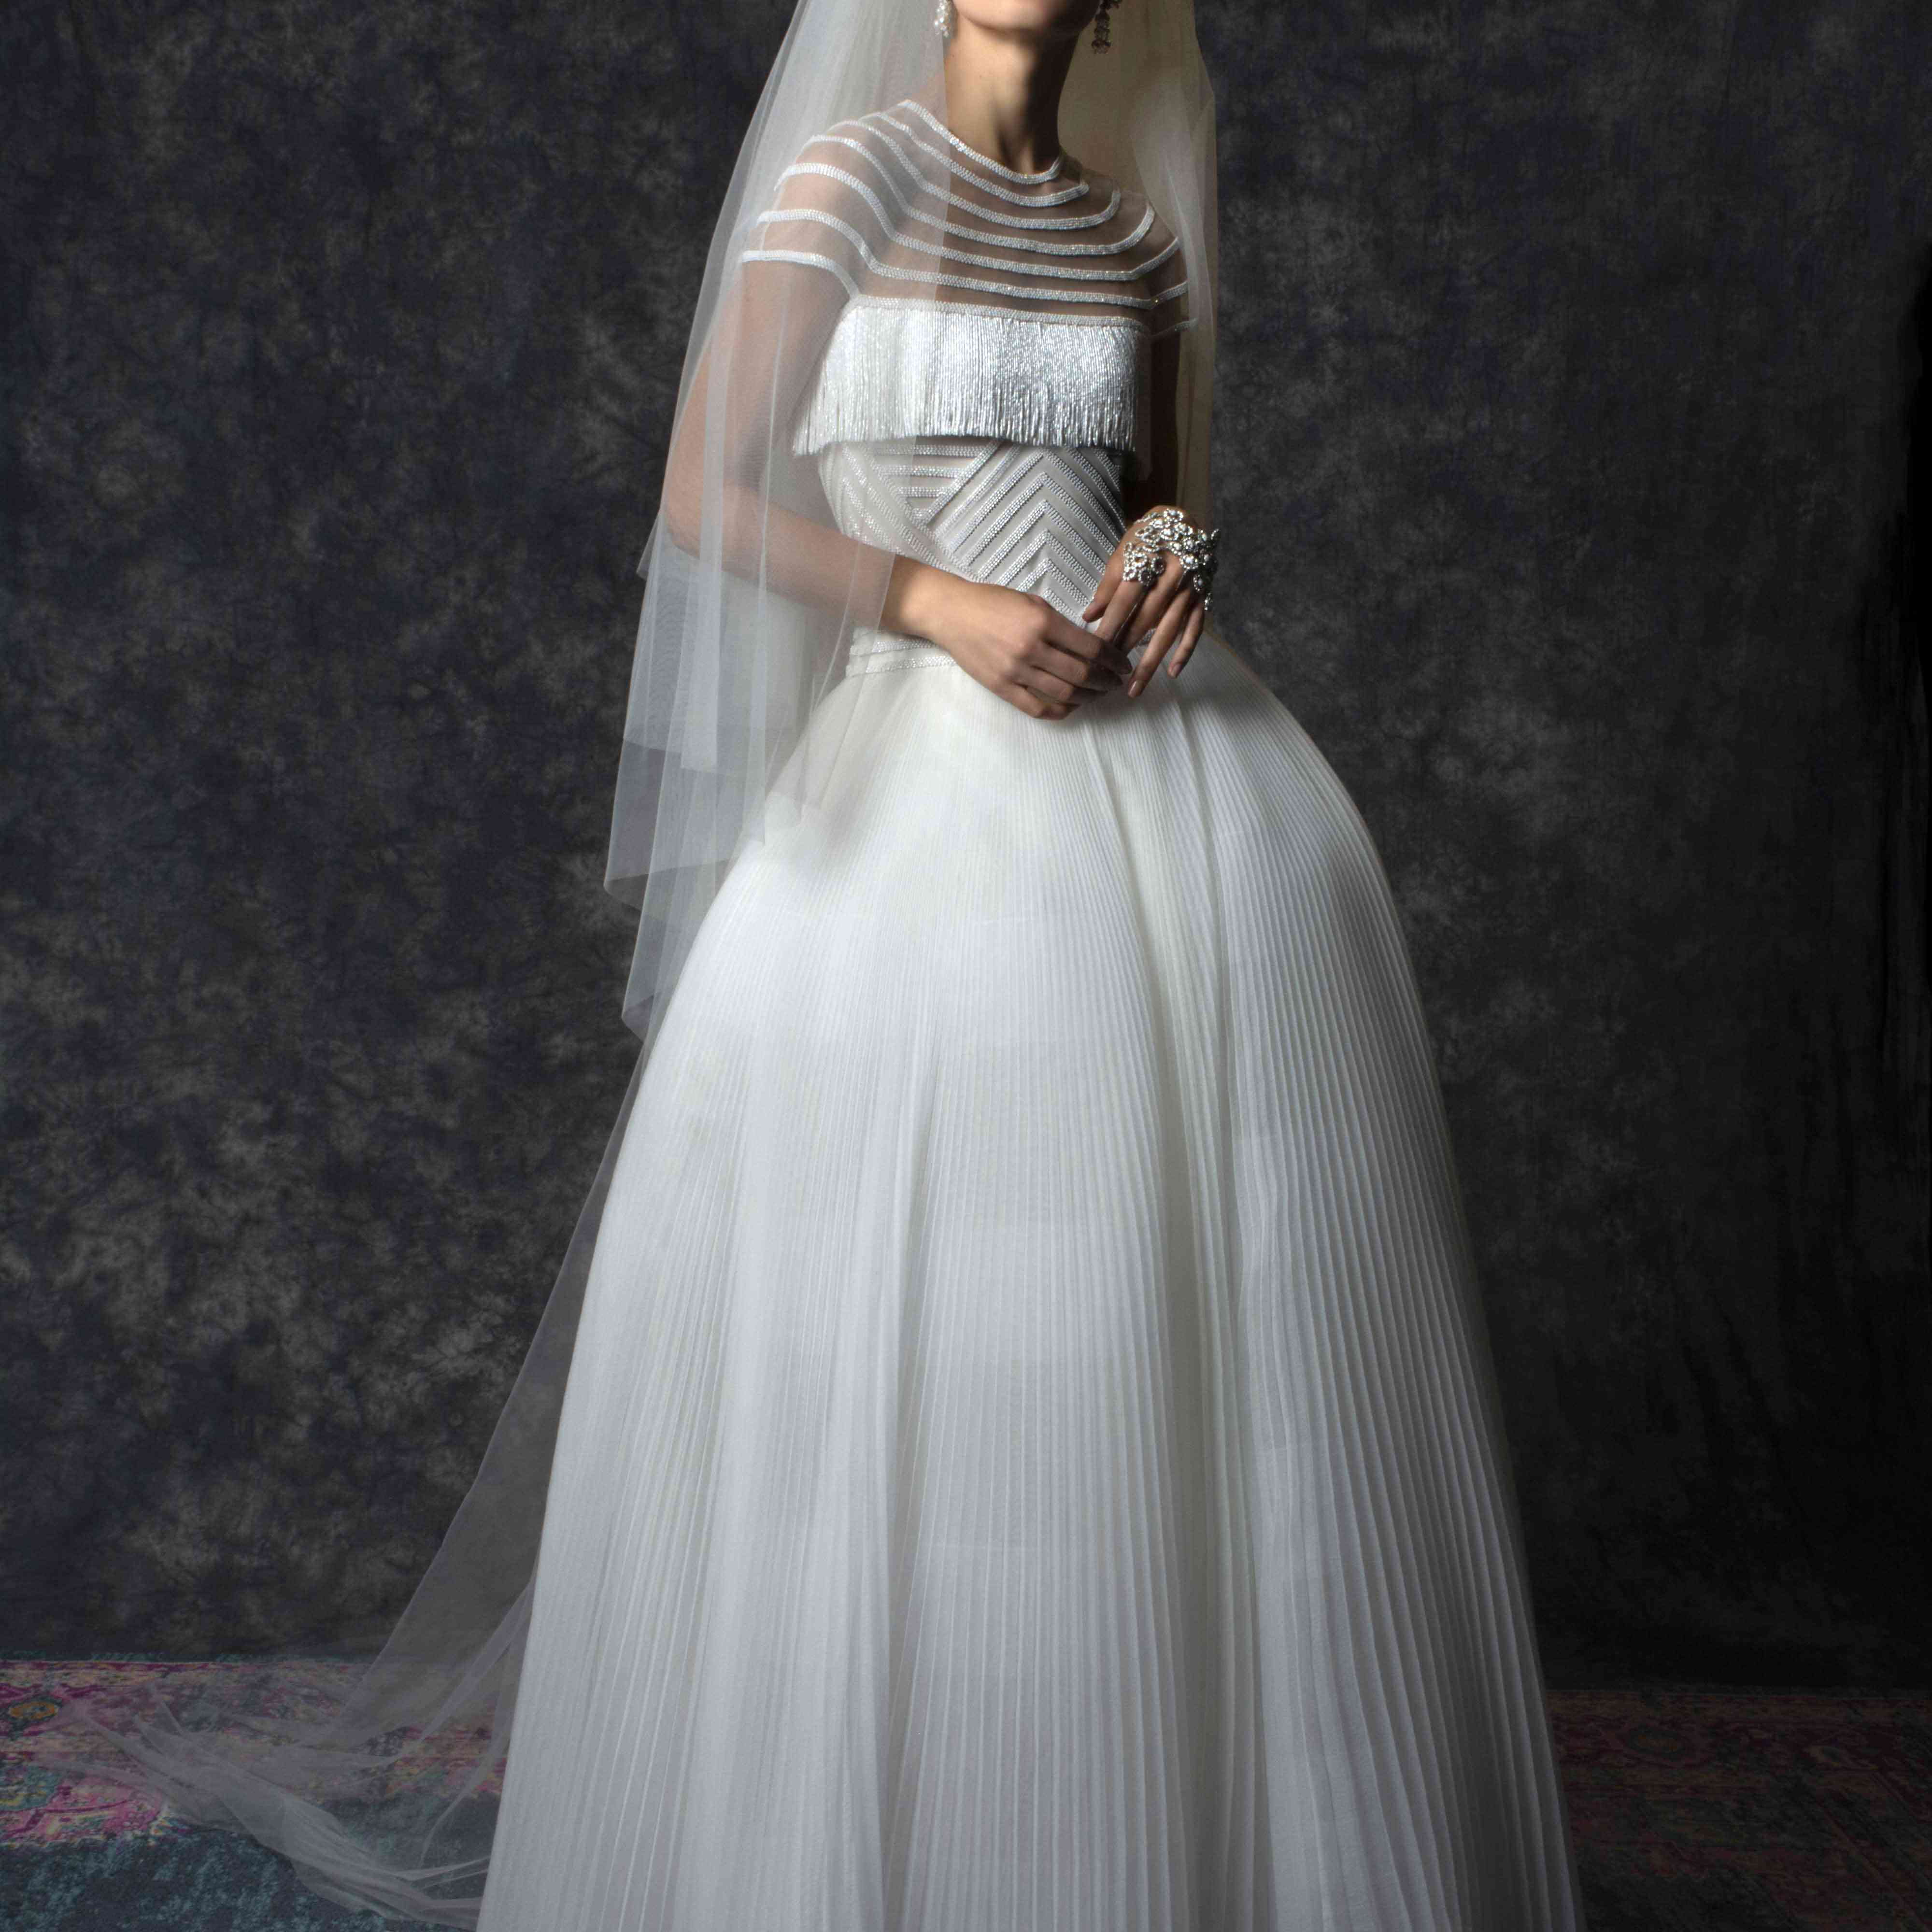 Model in tulle ballgown with geometric beading and fringe on the bodice